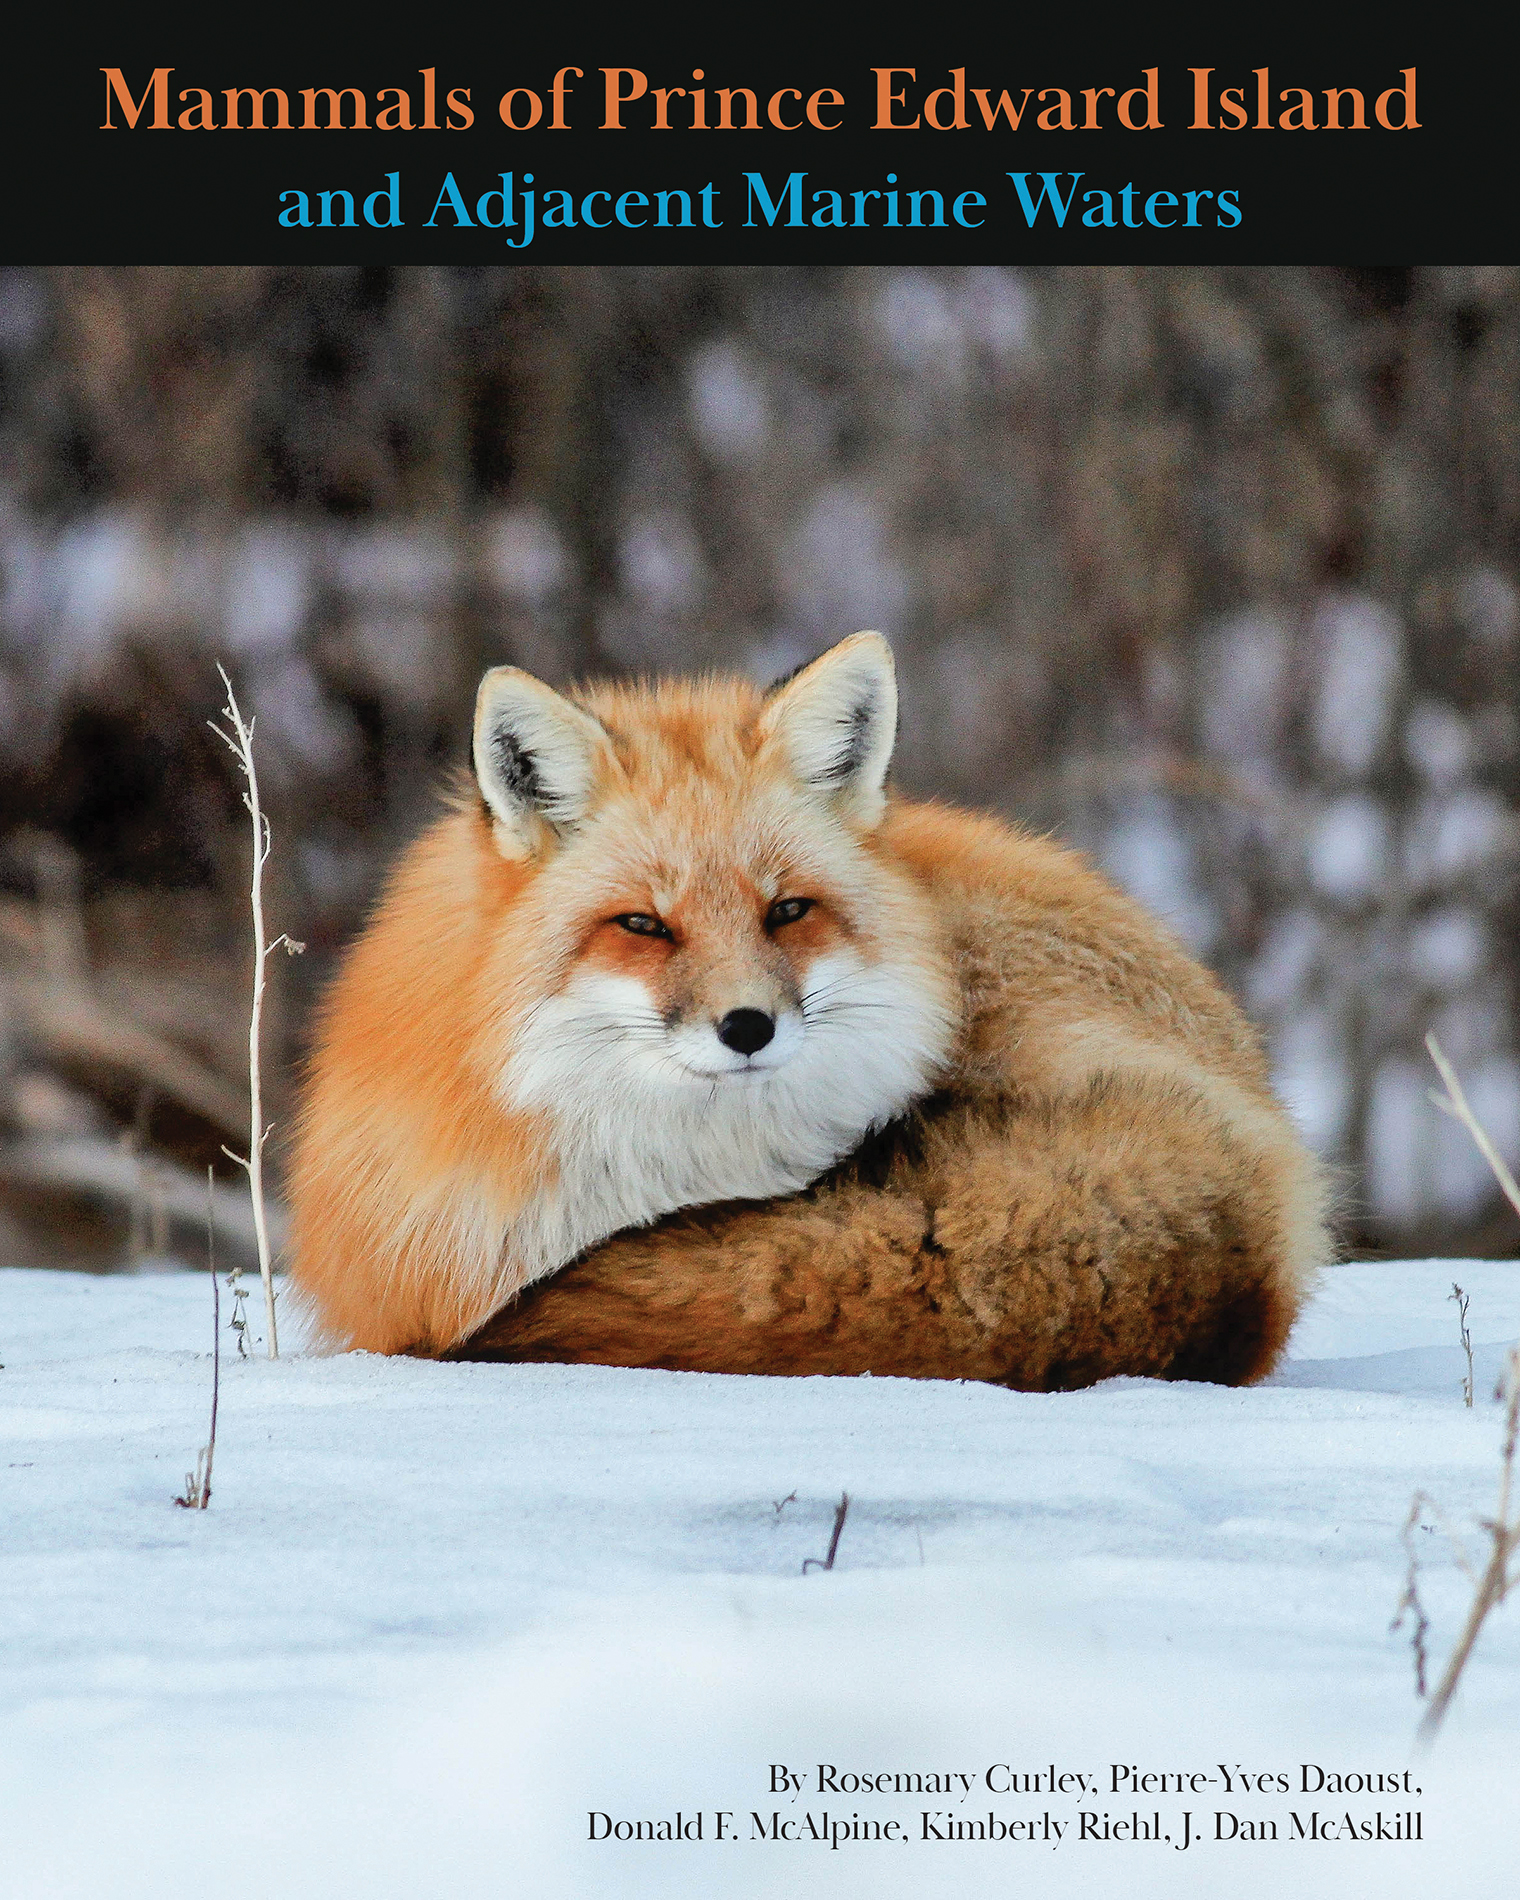 Mammals of Prince Edward Island and Adjacent Marine Waters